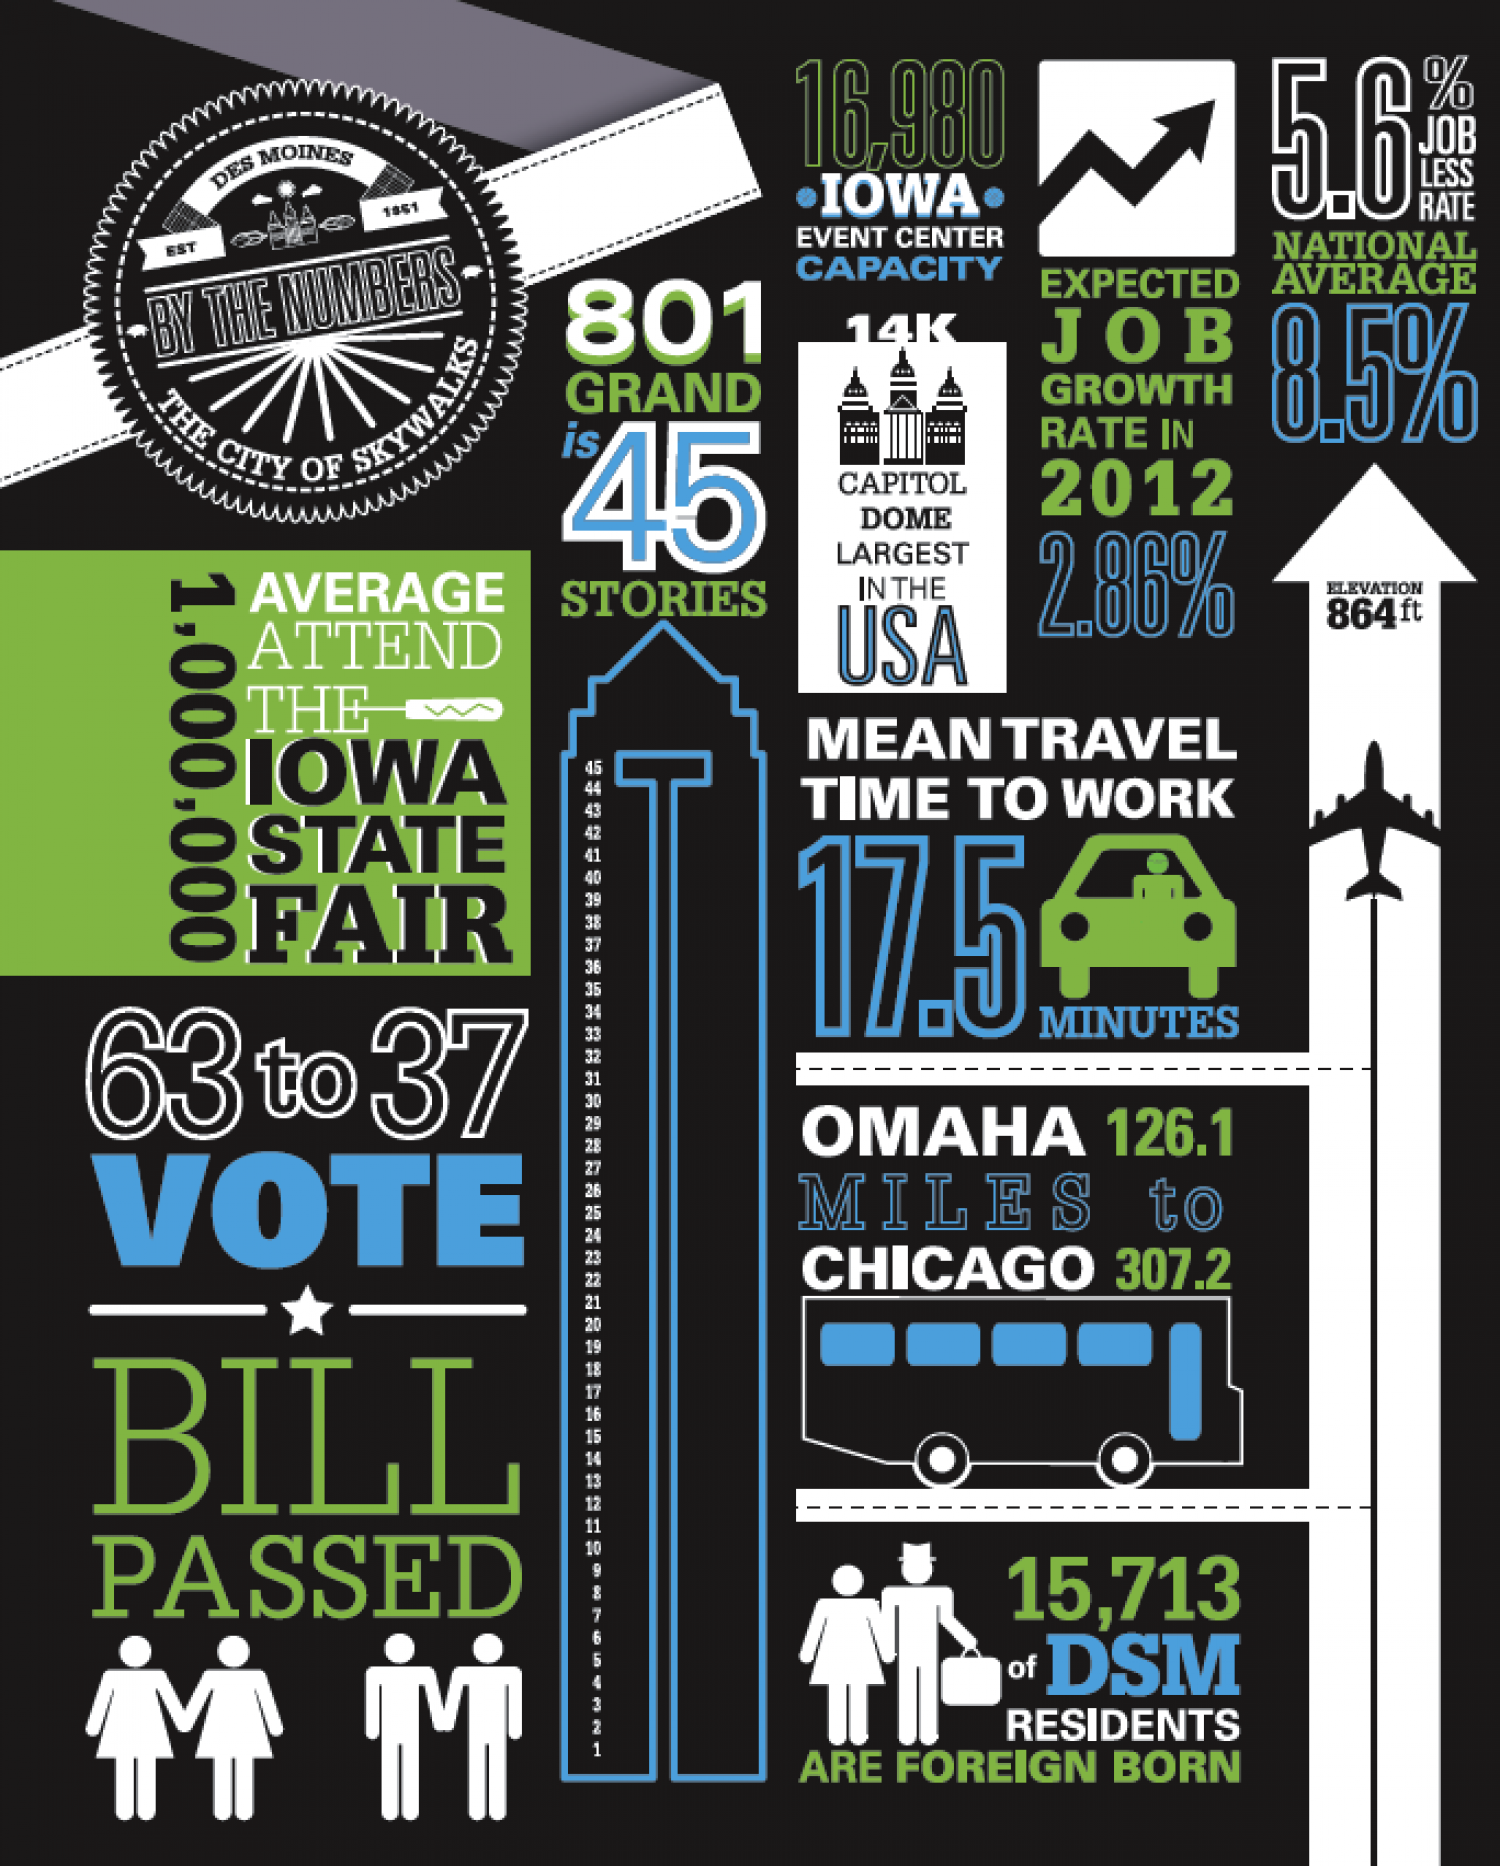 DSM: By The Numbers Infographic